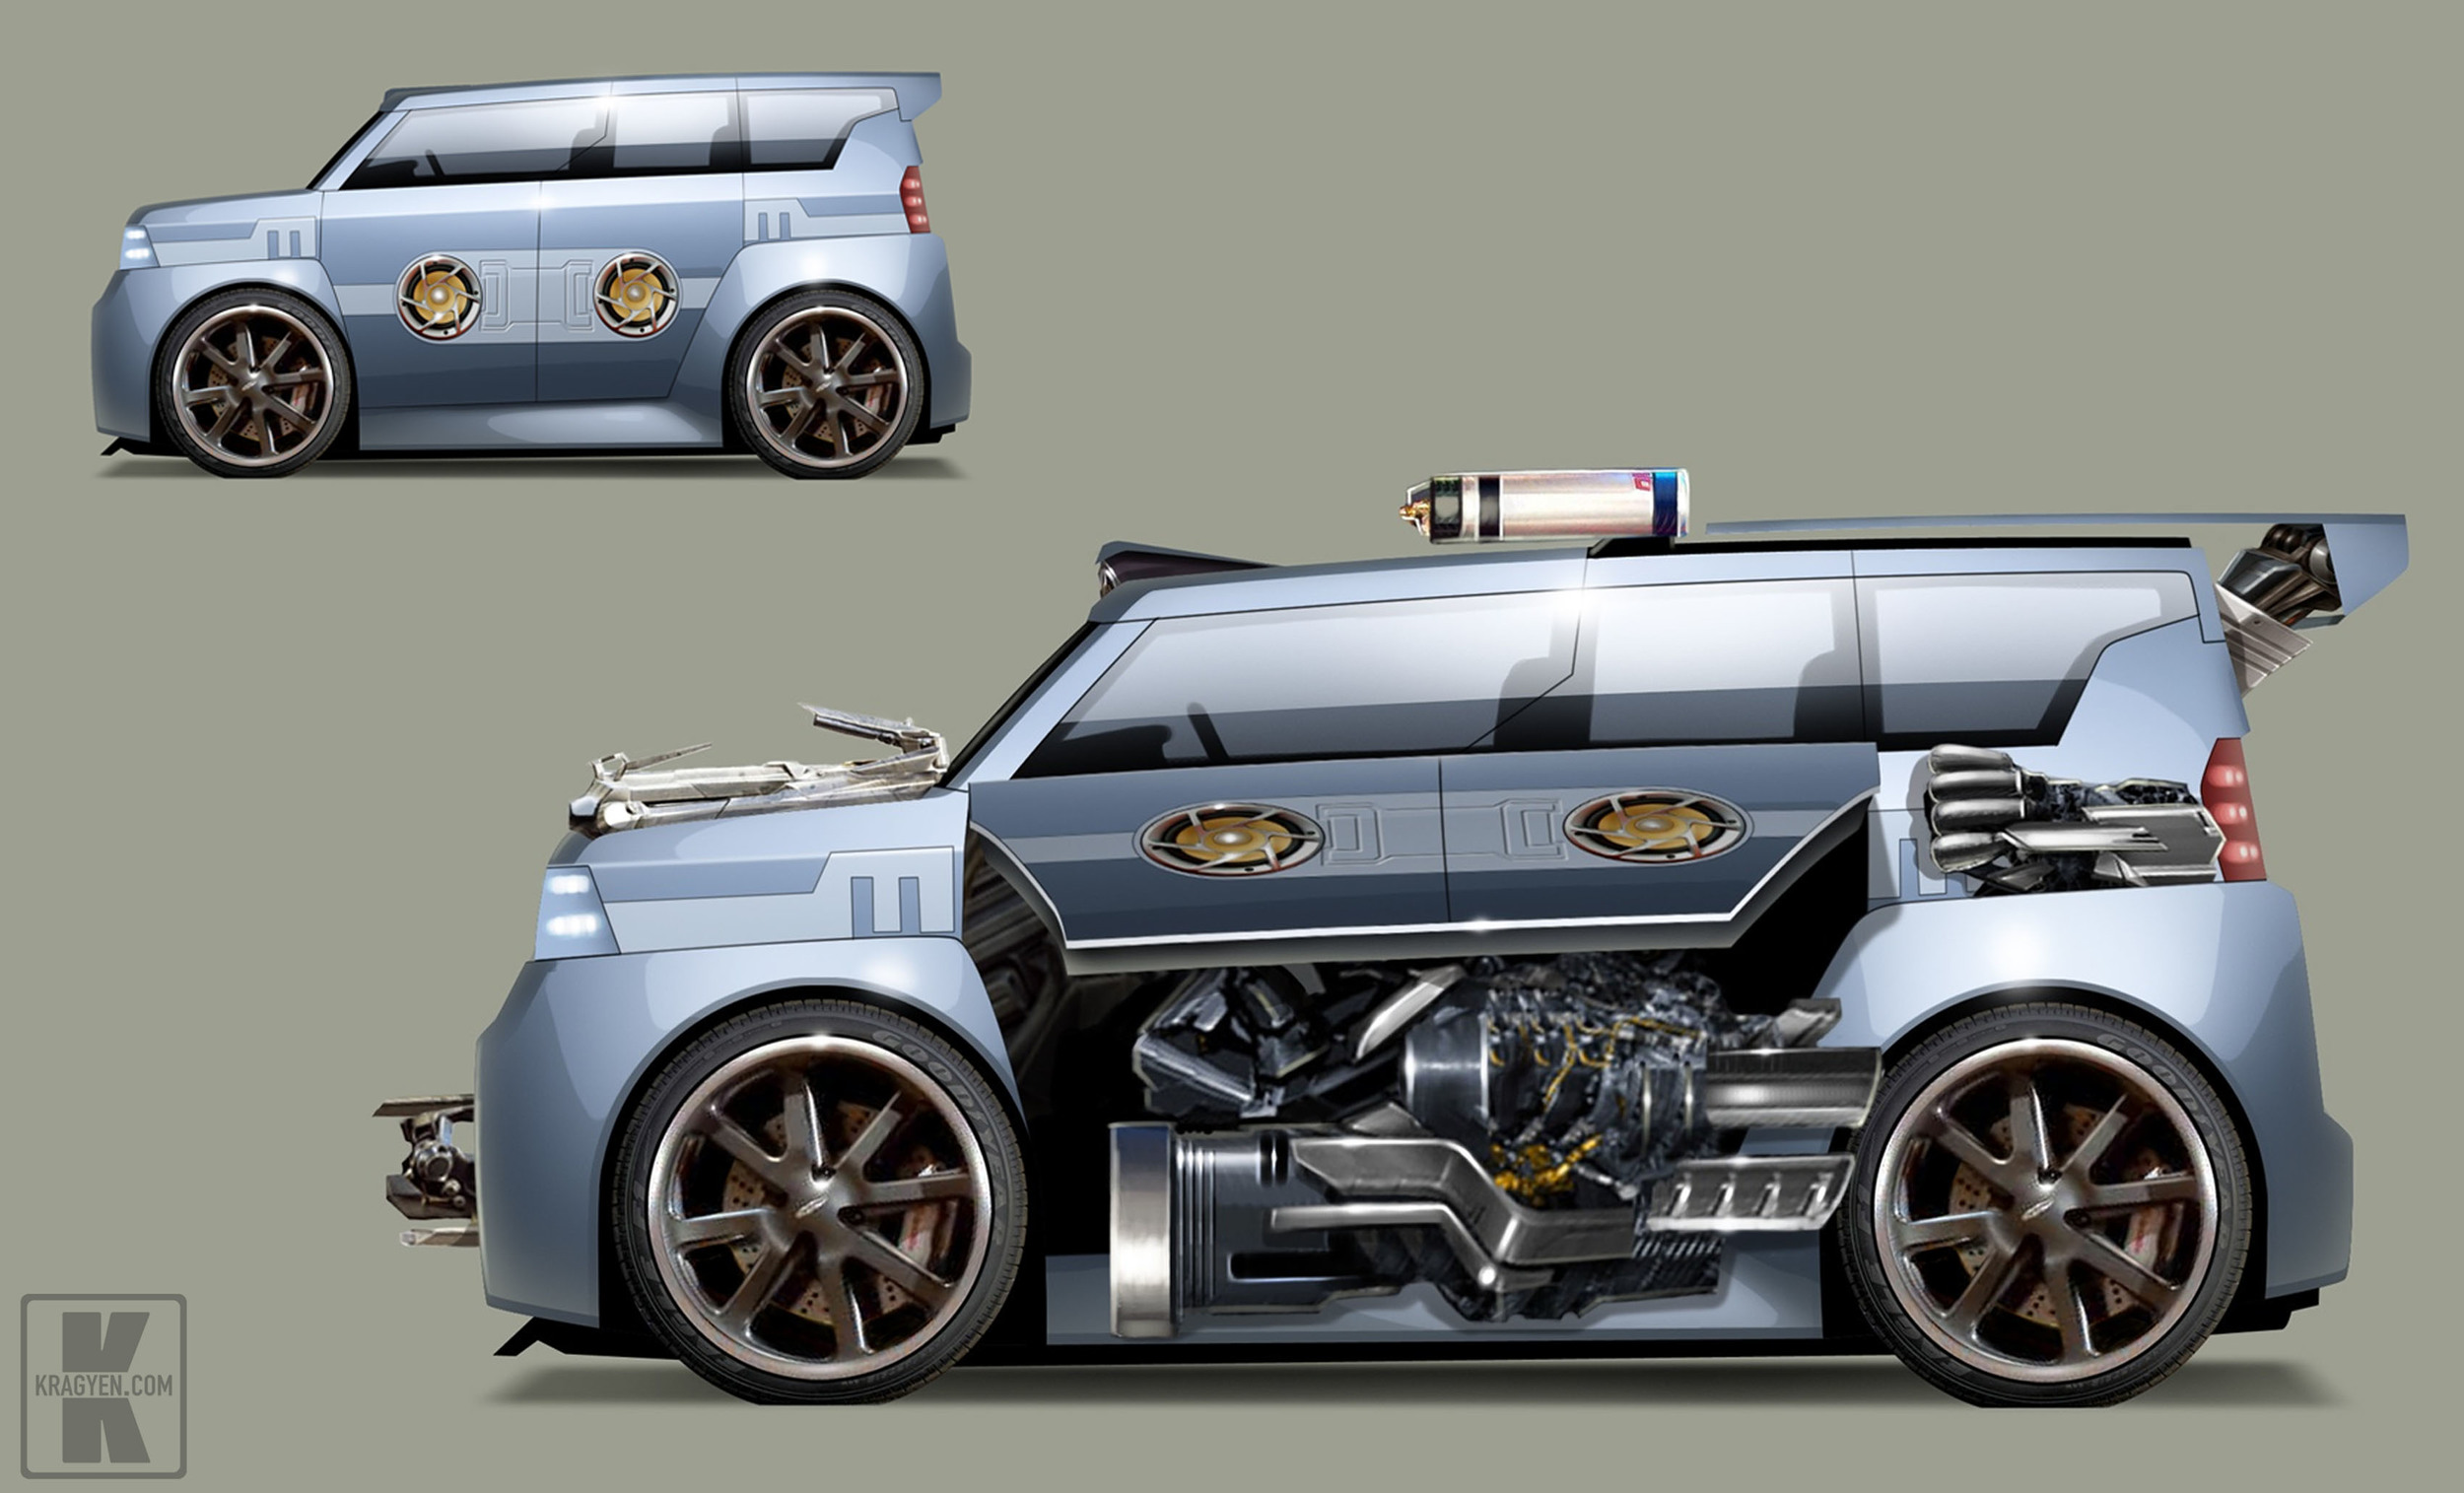 Soundwave Stealth Force Design Rendering showing both closed and open modes